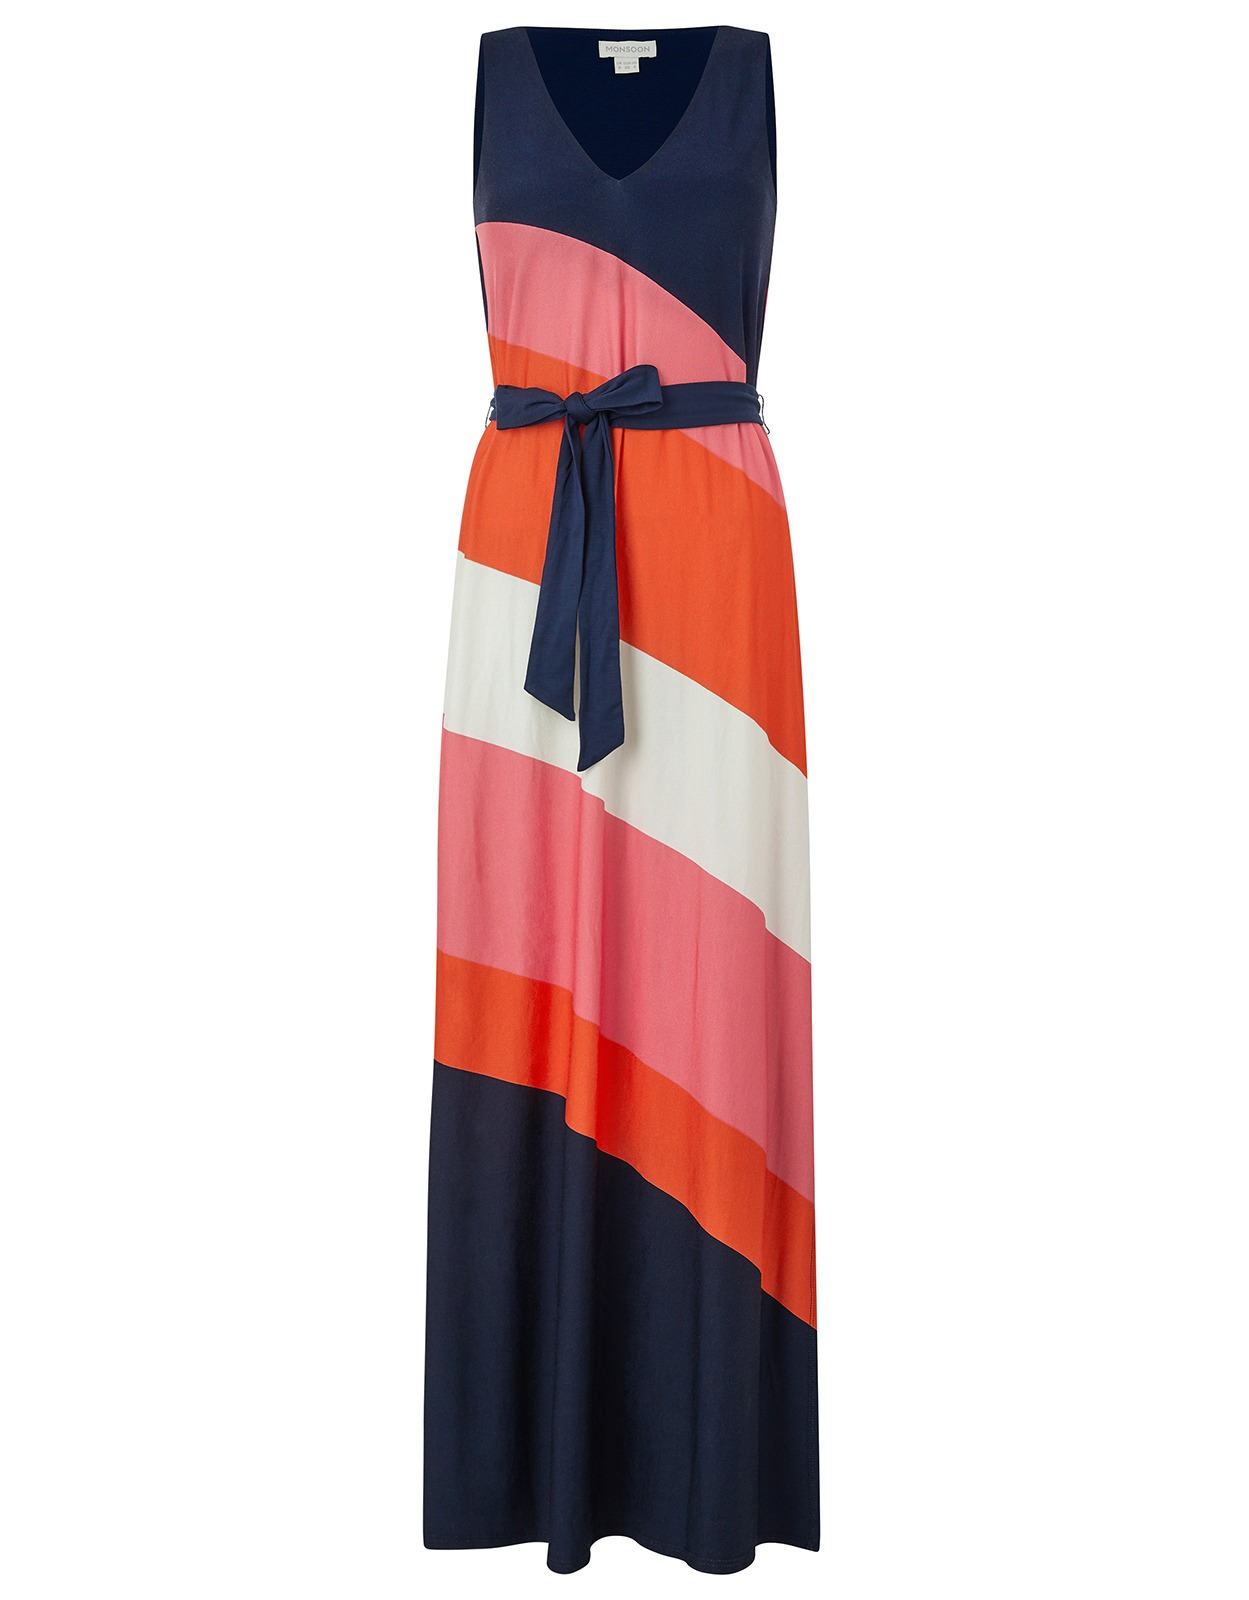 If you are looking at what to wear in Sri Lanka - lightweight Maxi dresses are a great choice